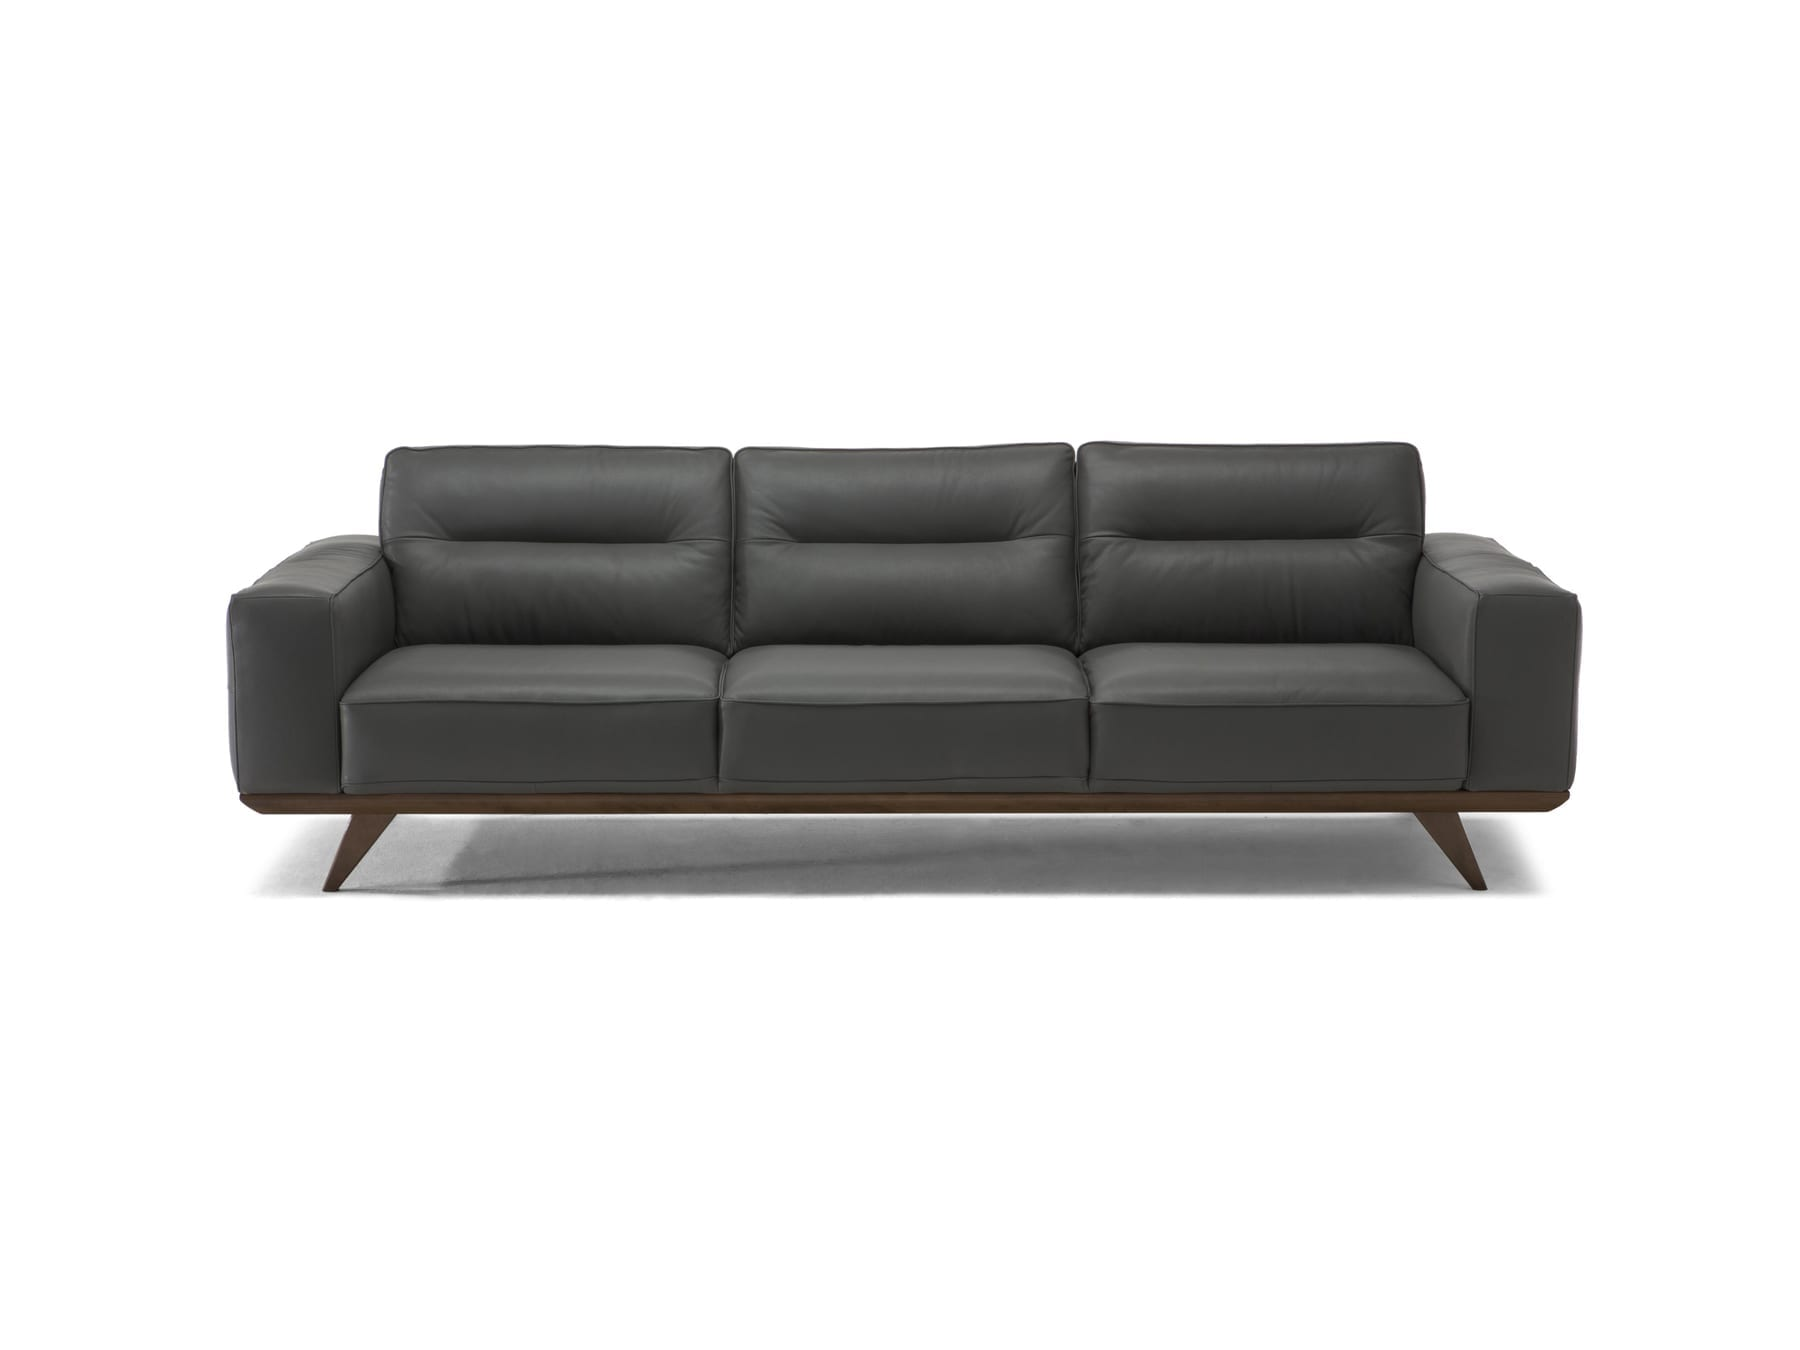 Natuzzi Editions Sofas B 764 Leather Sofa Bed Natuzzi Editions Italmoda Furniture Thesofa